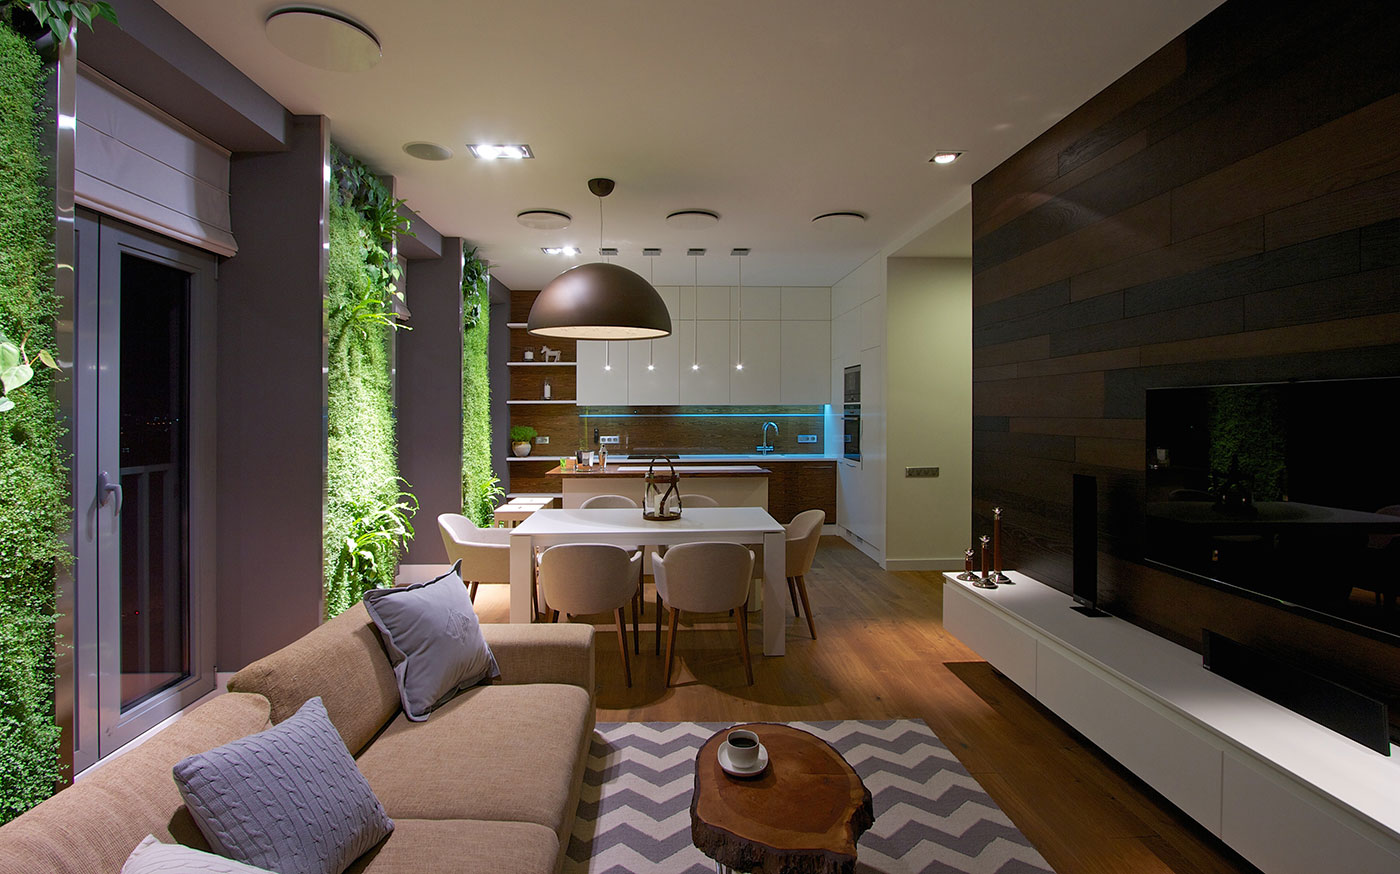 Modern Apartment Design: Green Walls by SVOYA